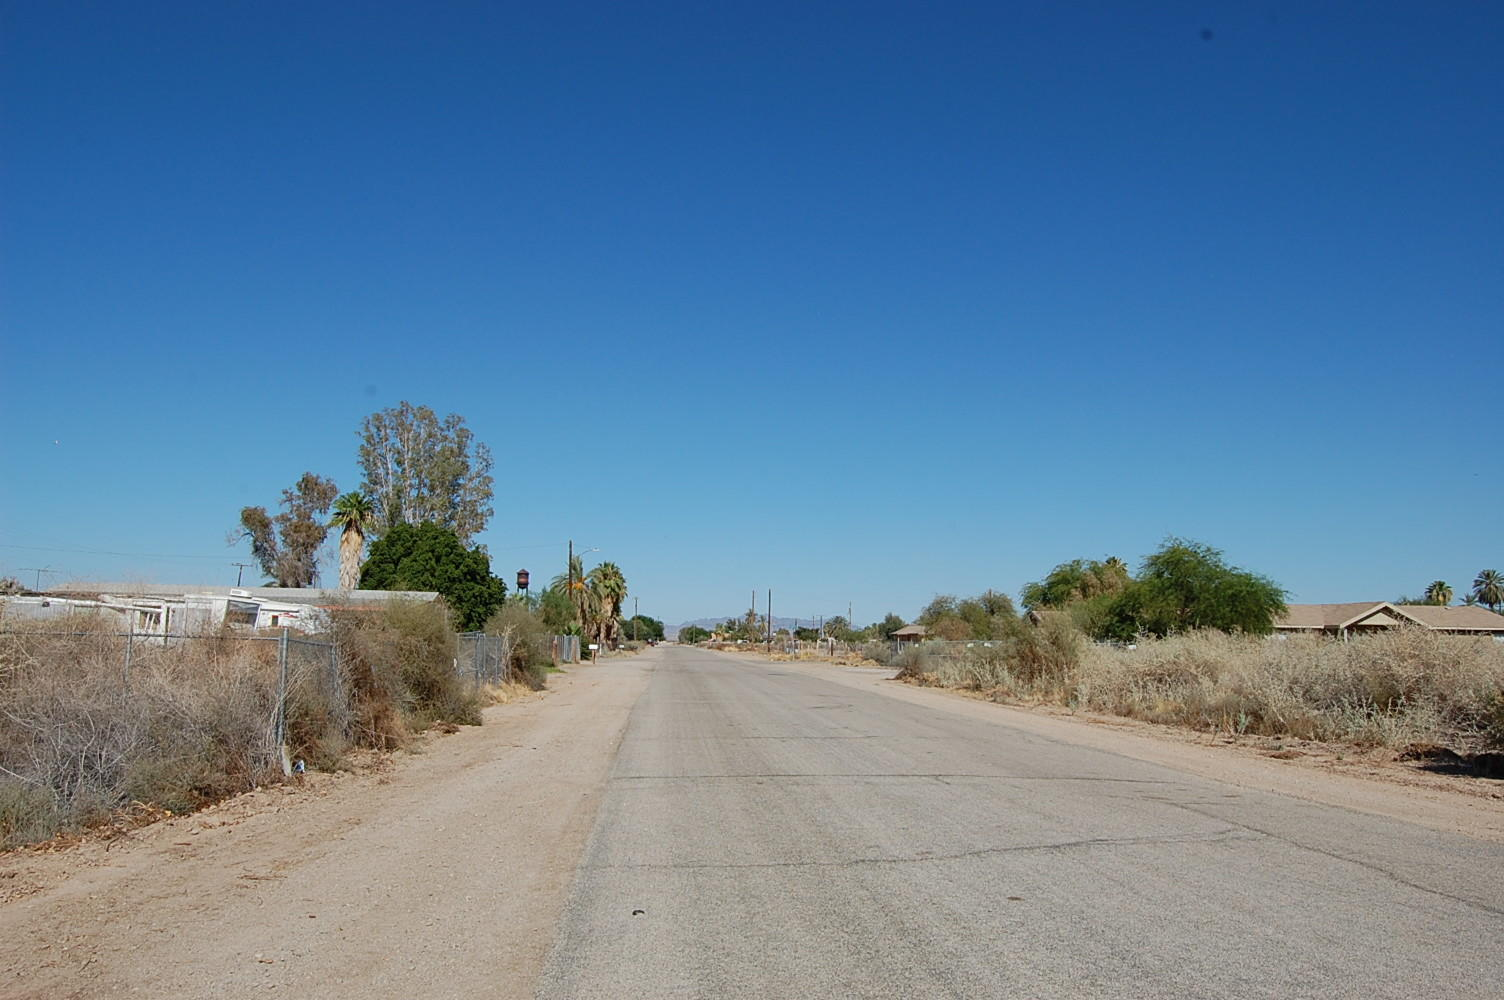 Lot in Small Agricultural Community - Image 5